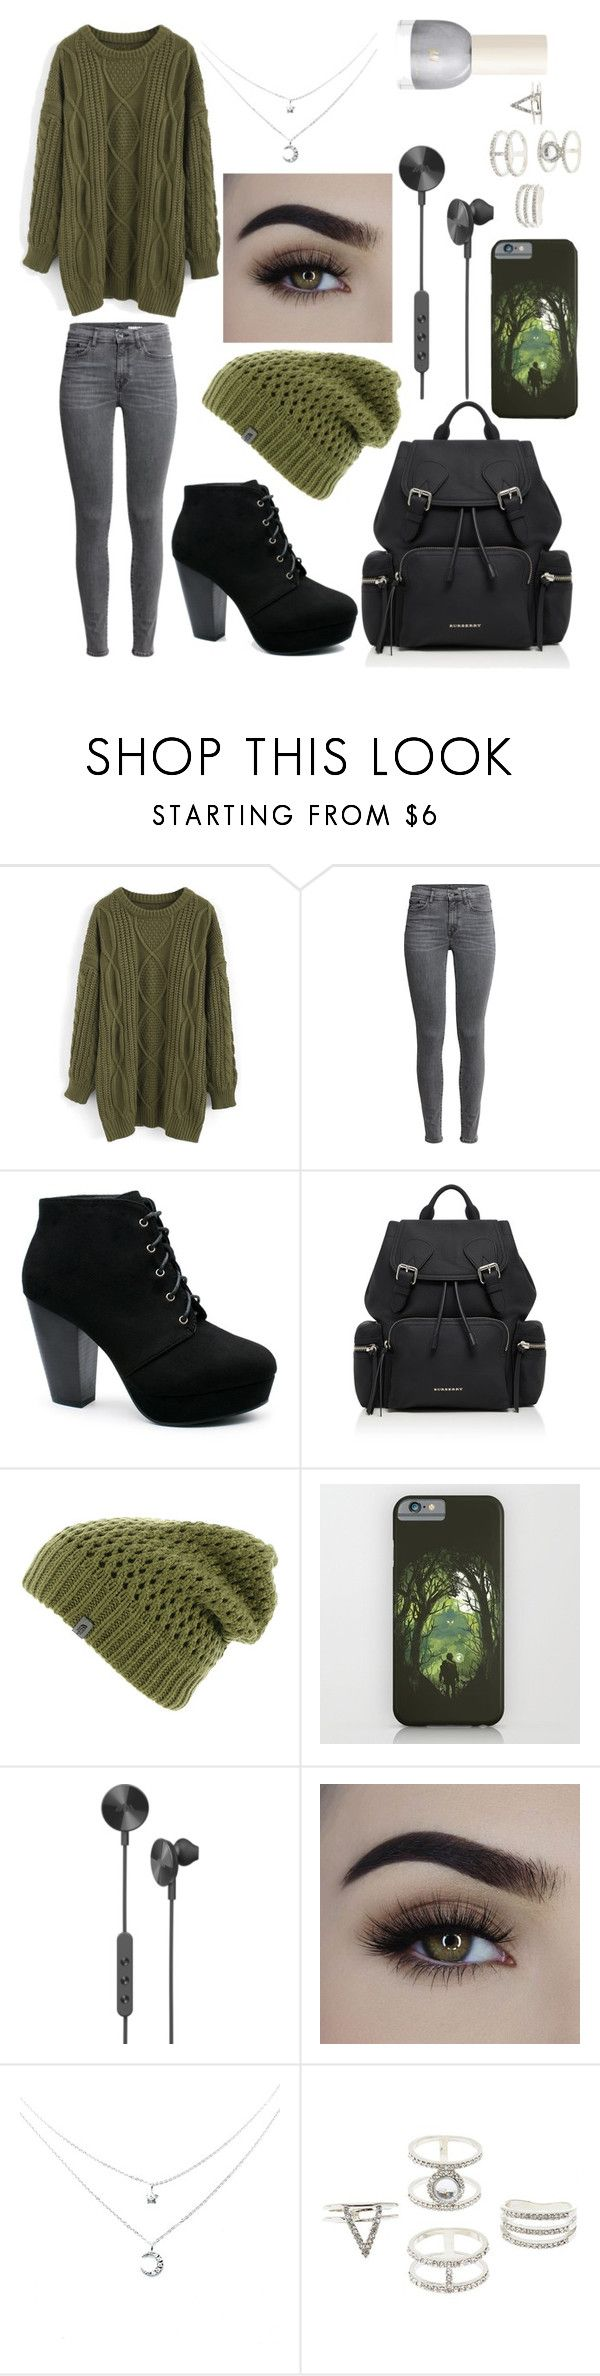 """Untitled #77"" by eliinako ❤ liked on Polyvore featuring Chicwish, Burberry, The North Face, i.am+ and Charlotte Russe"